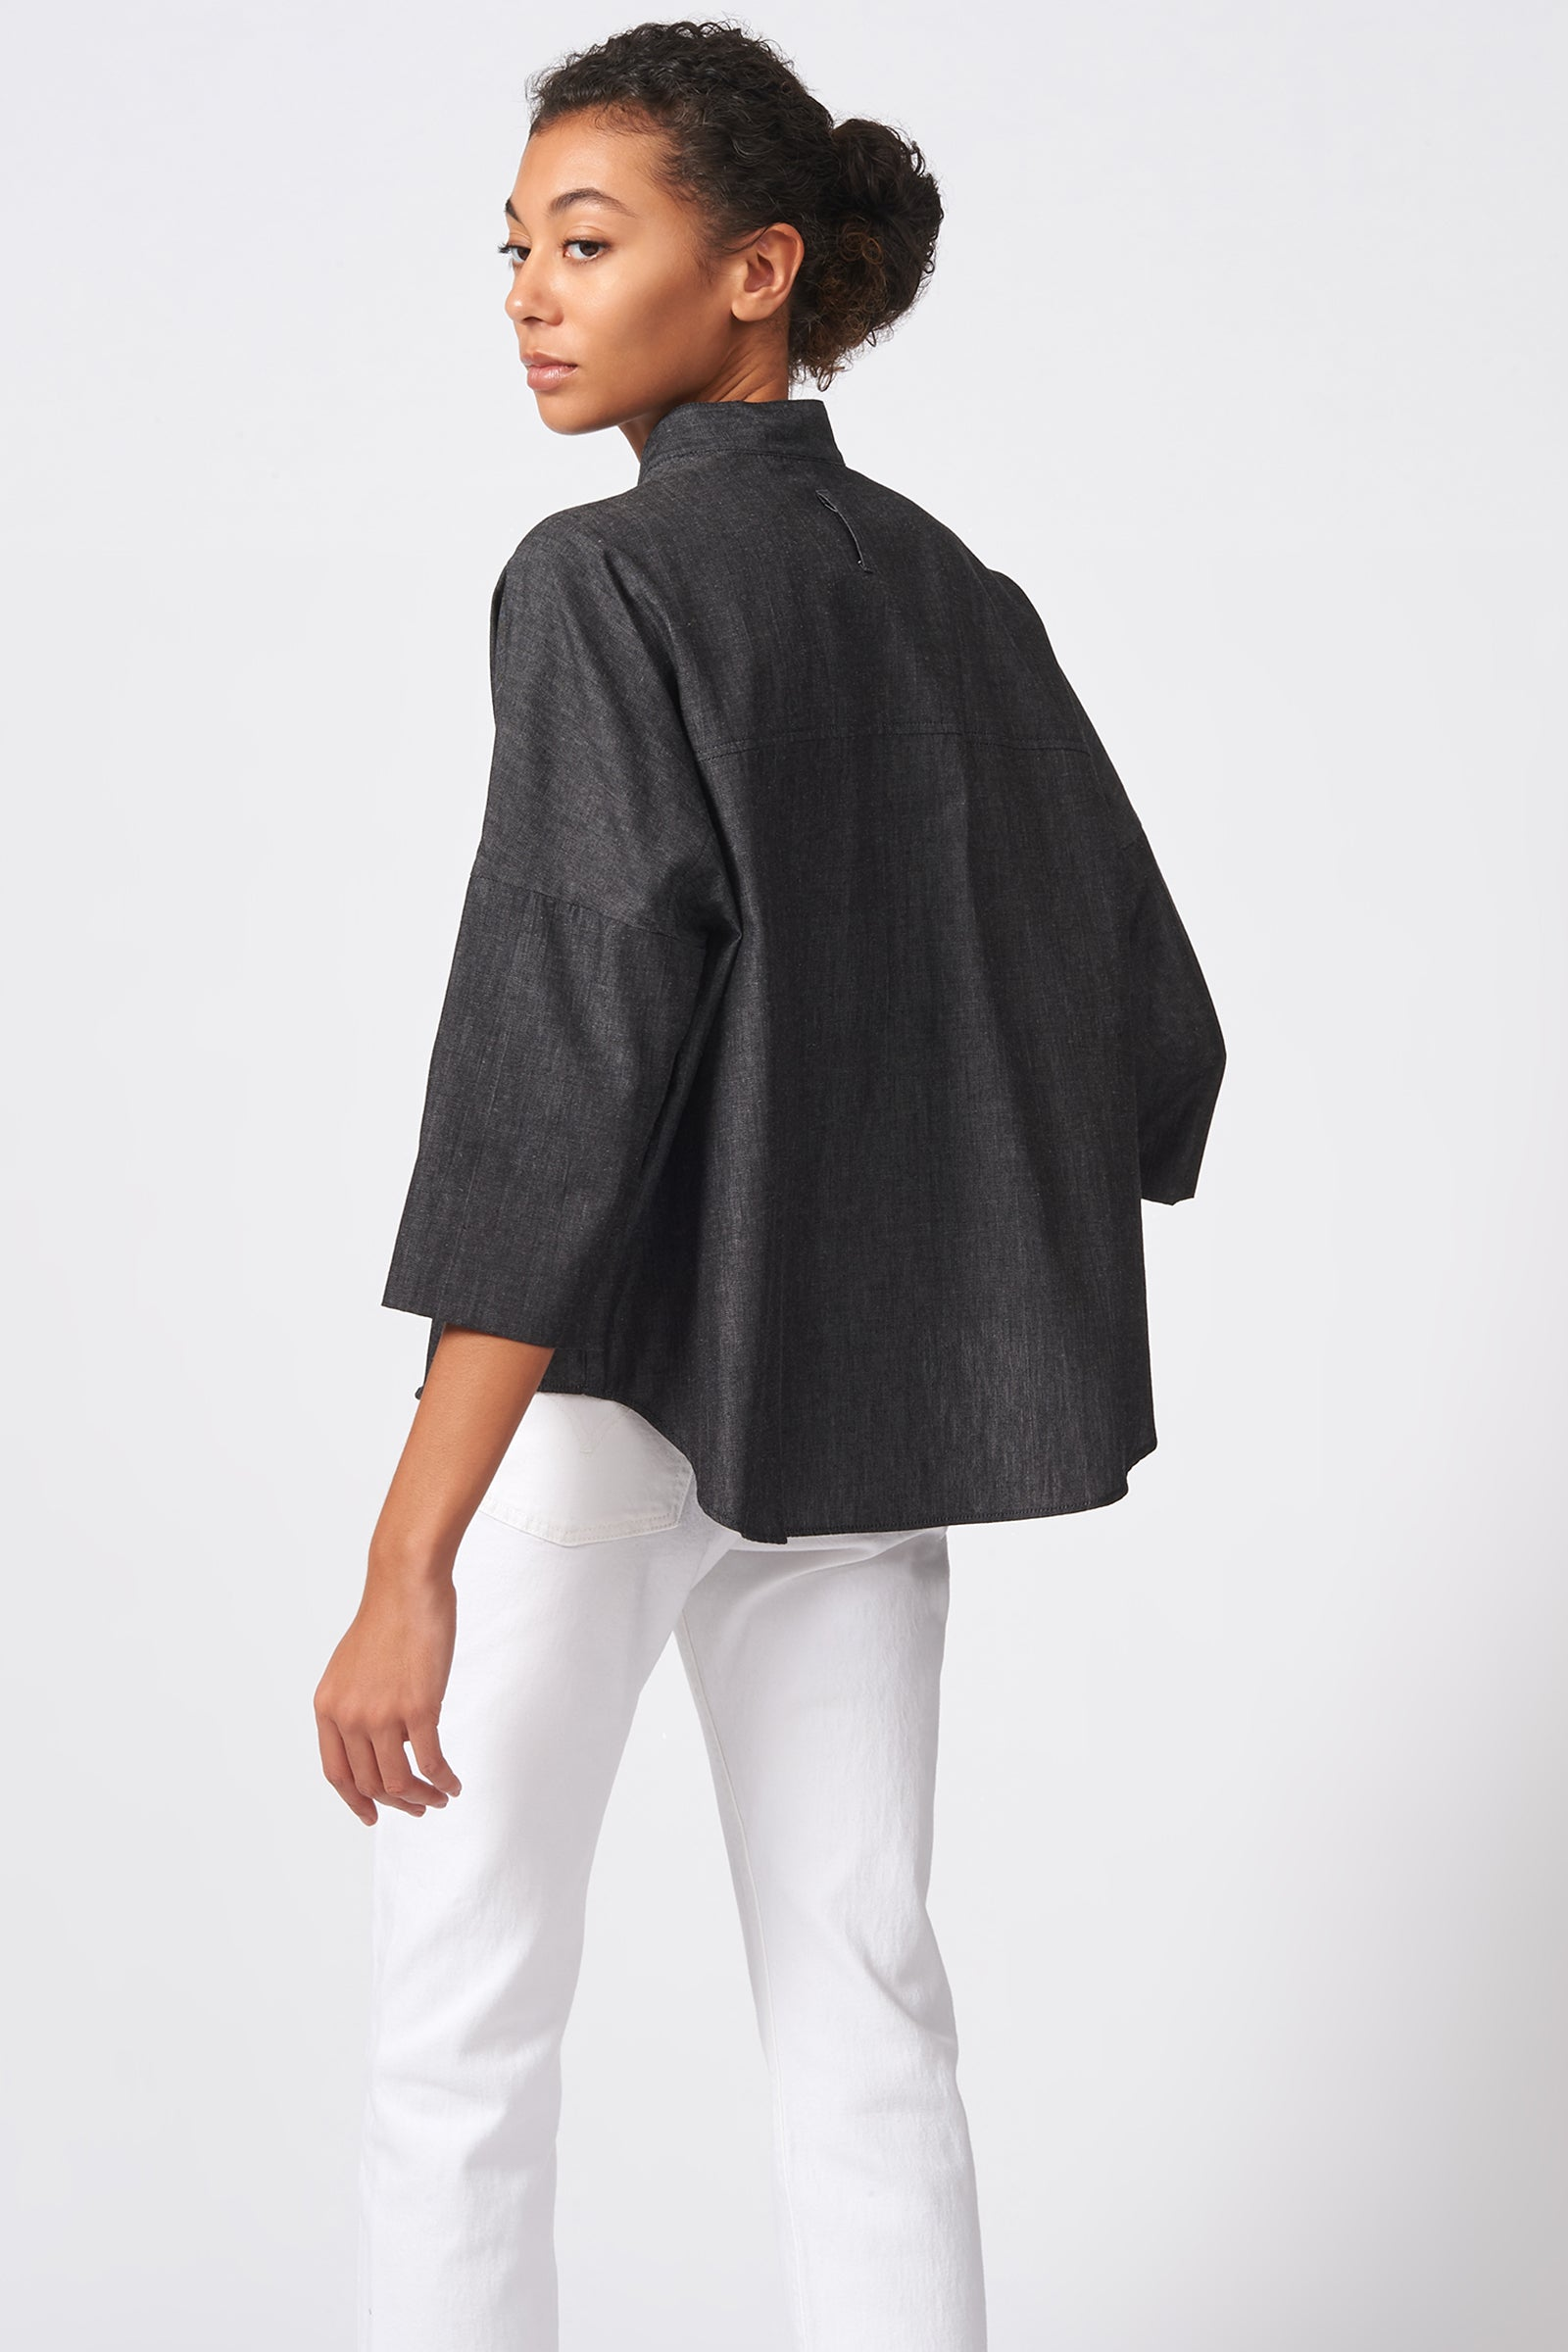 Kal Rieman Drop Shoulder Top in Dark Denim on Model Back Full View